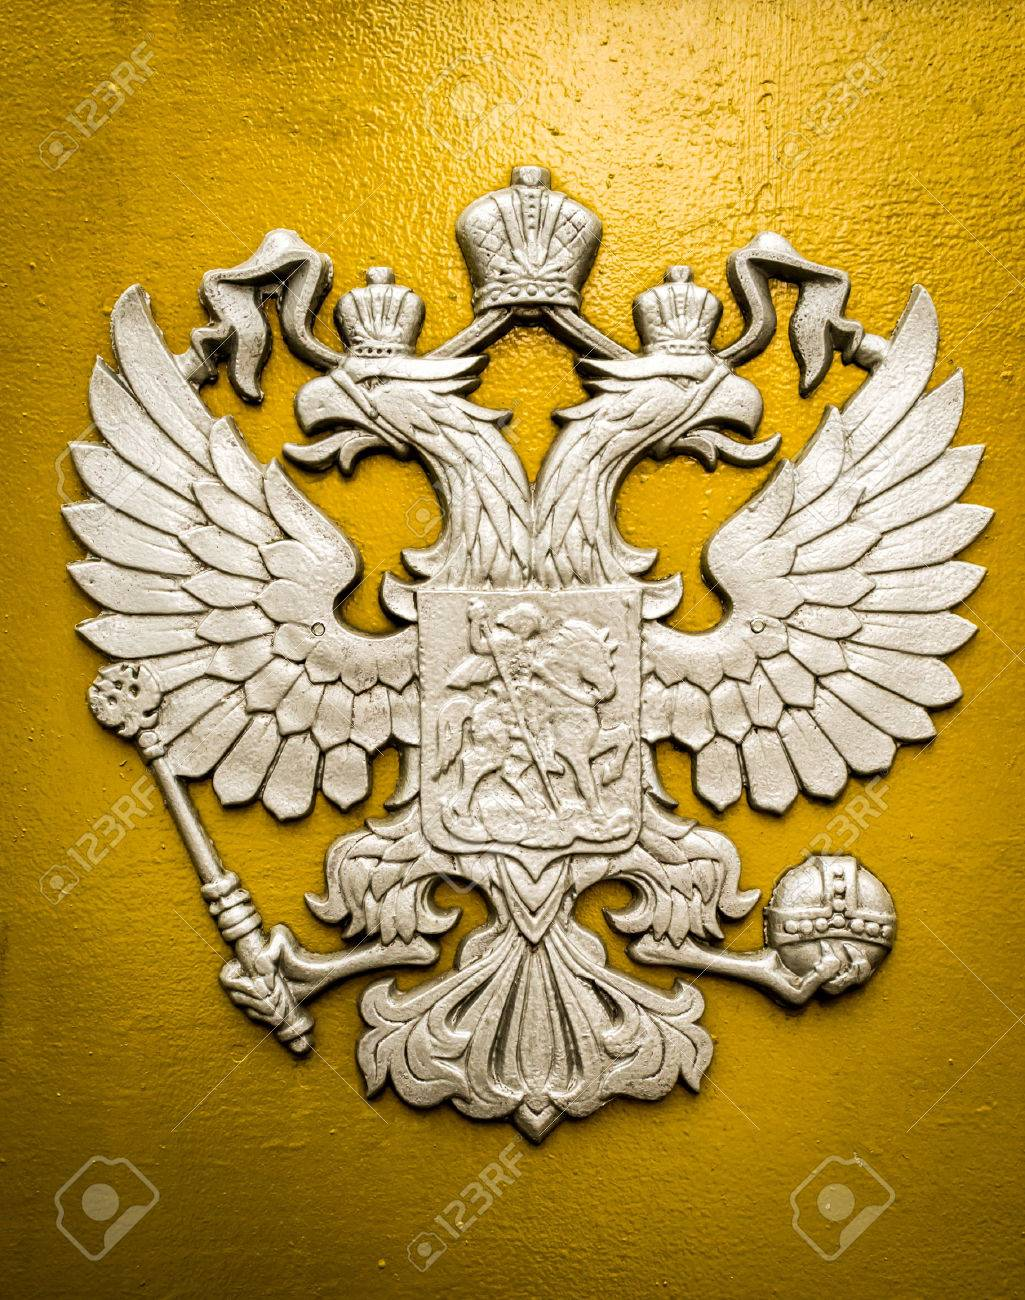 Silver Double headed eagle on gold painted metal - 39076160